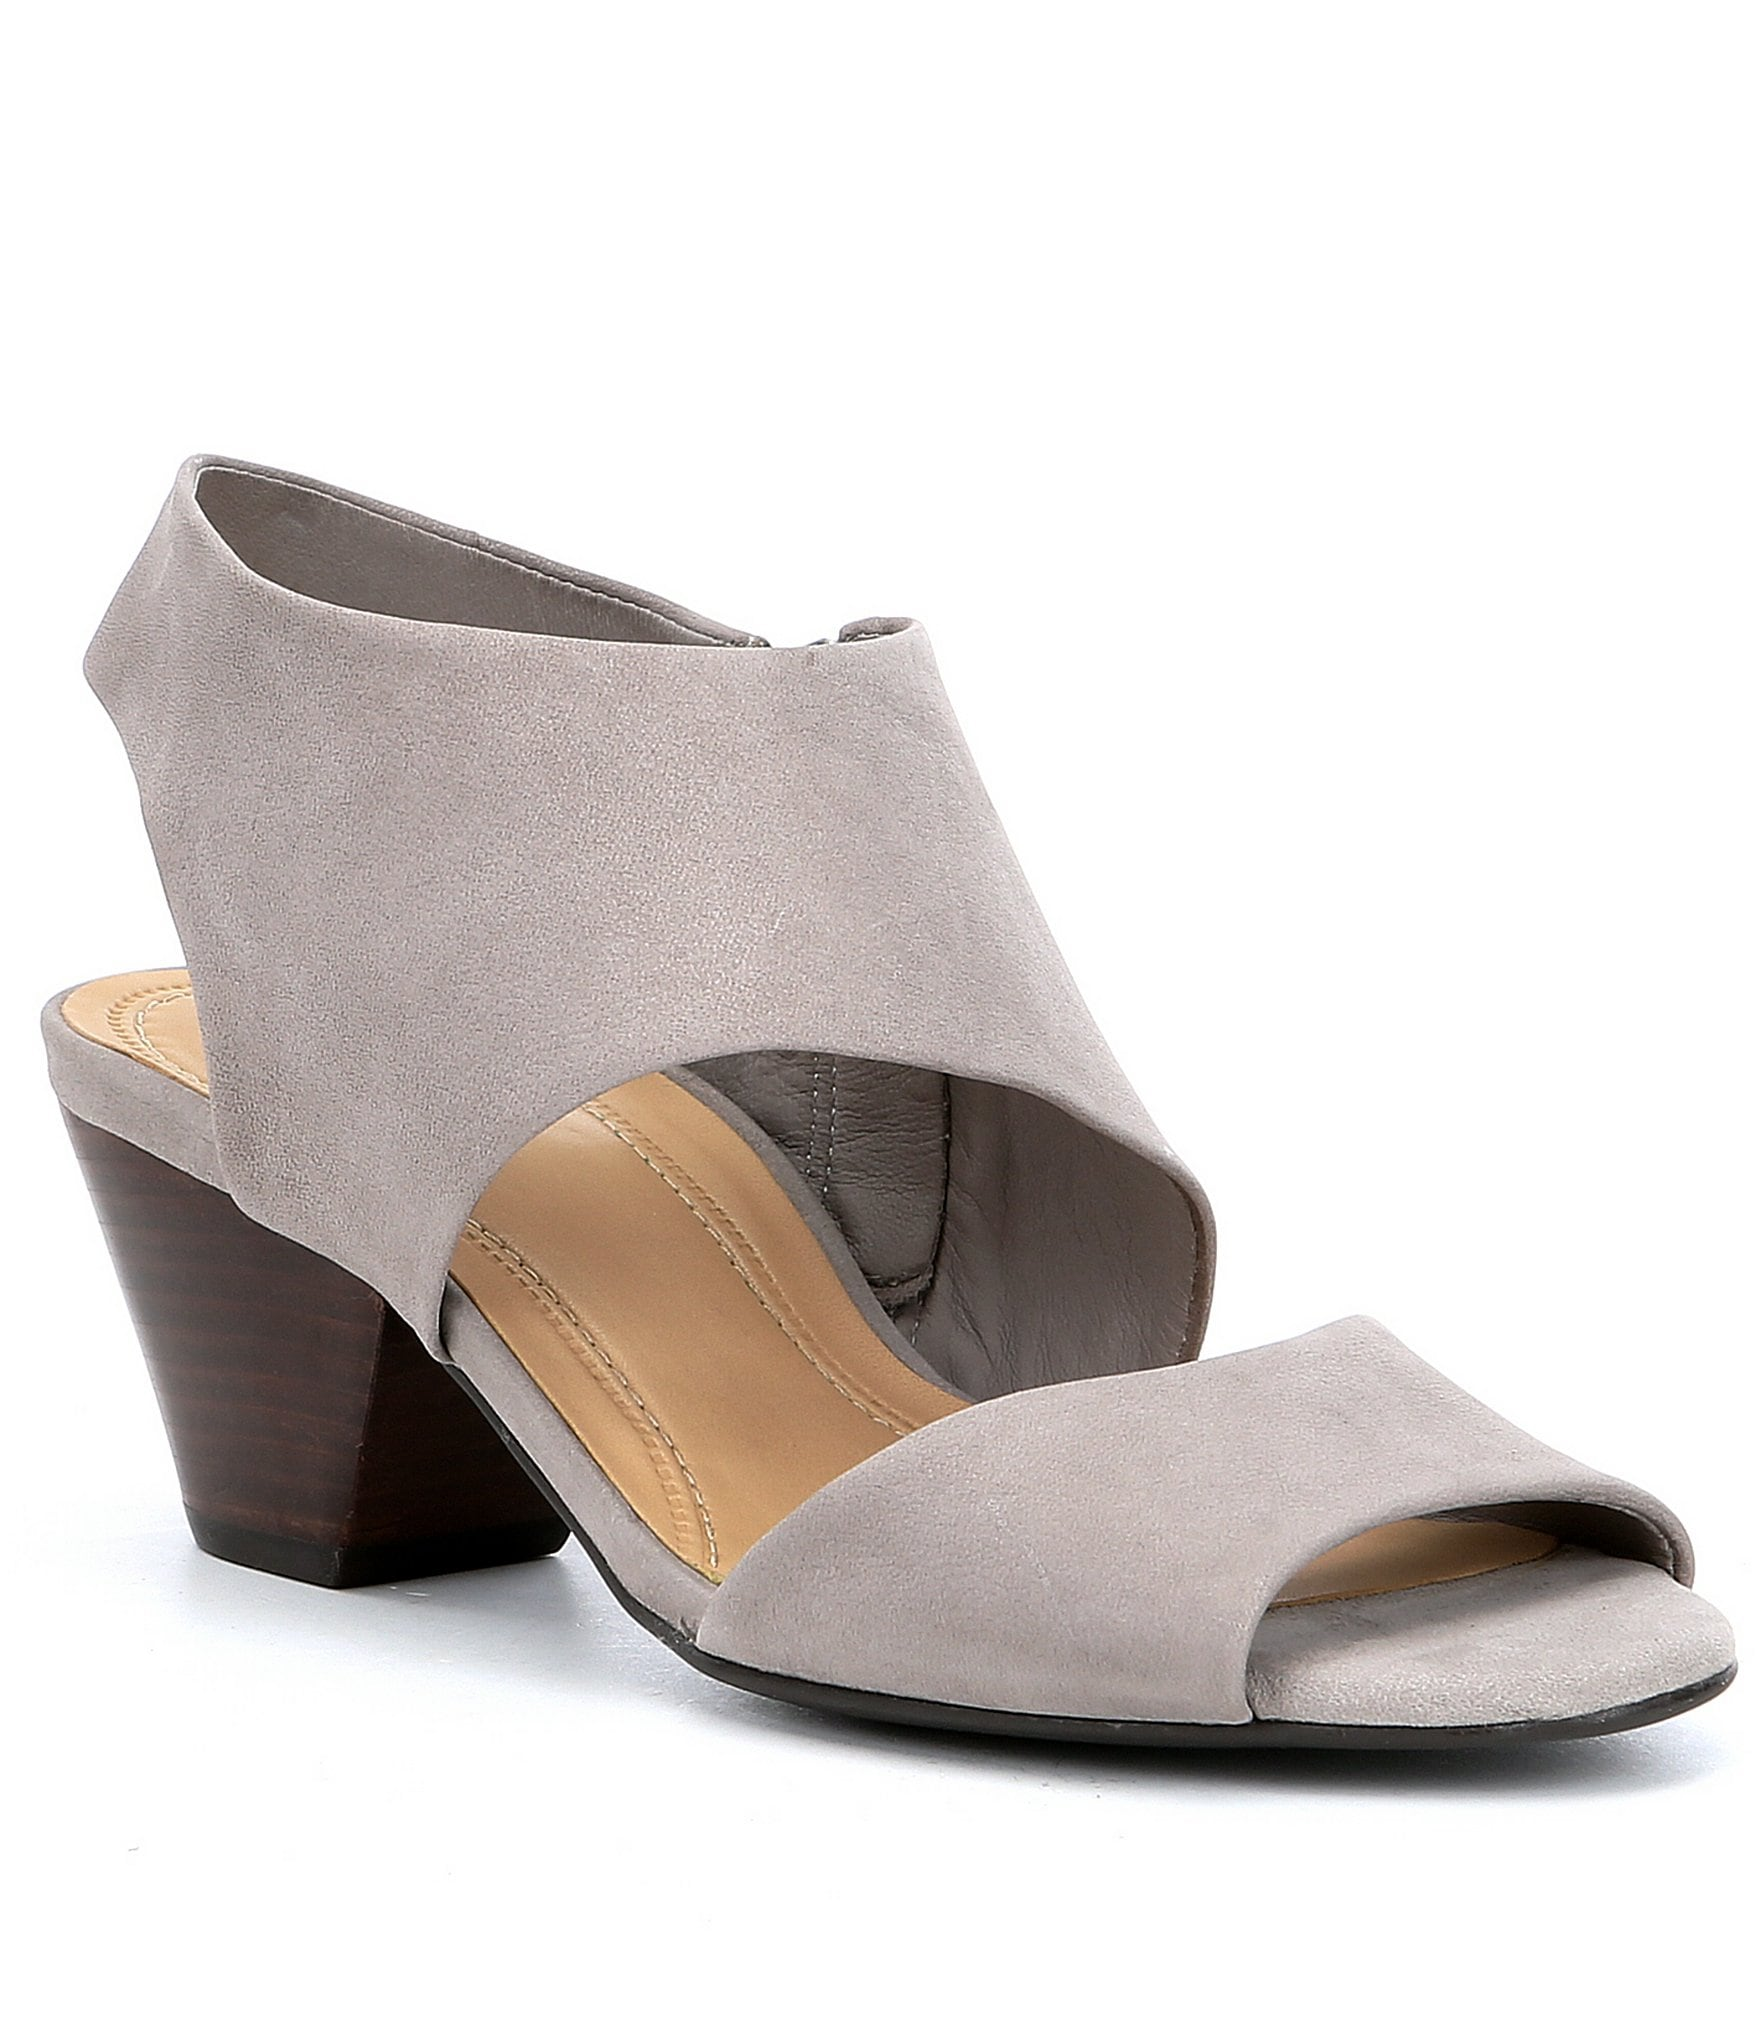 Sandals Shoes Online Shopping